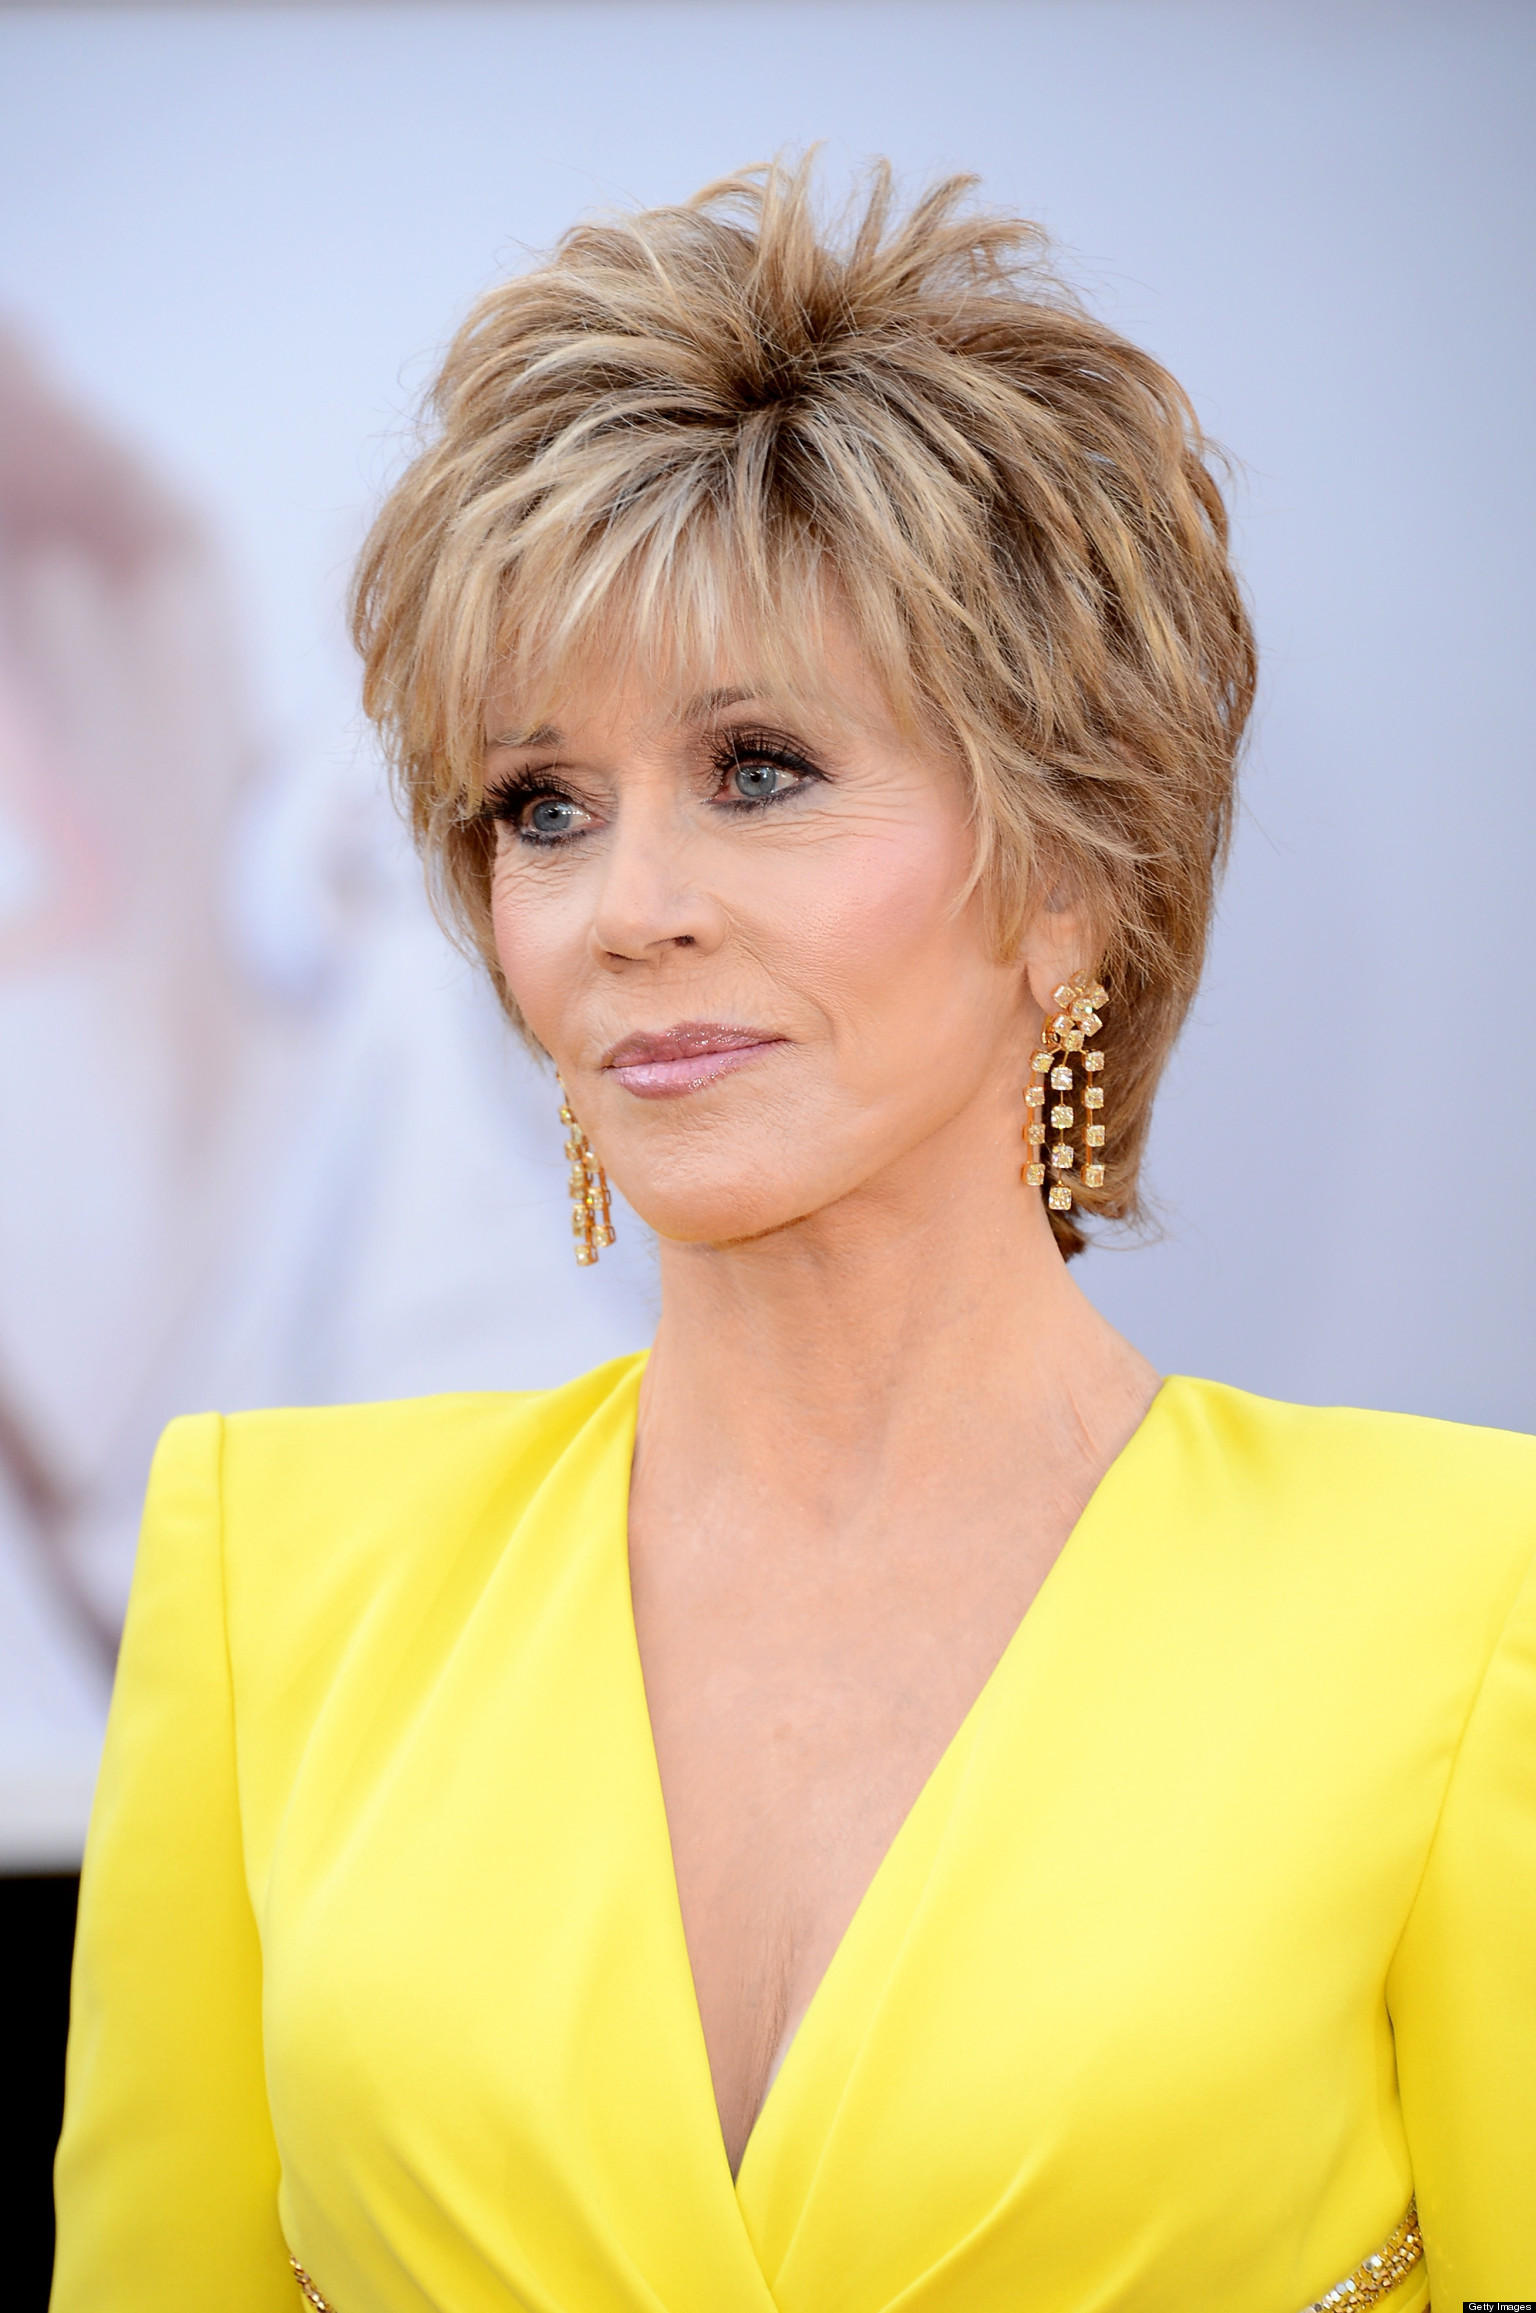 Jane Fonda Is Not Afraid To Die: Actress Opens Up To Oprah